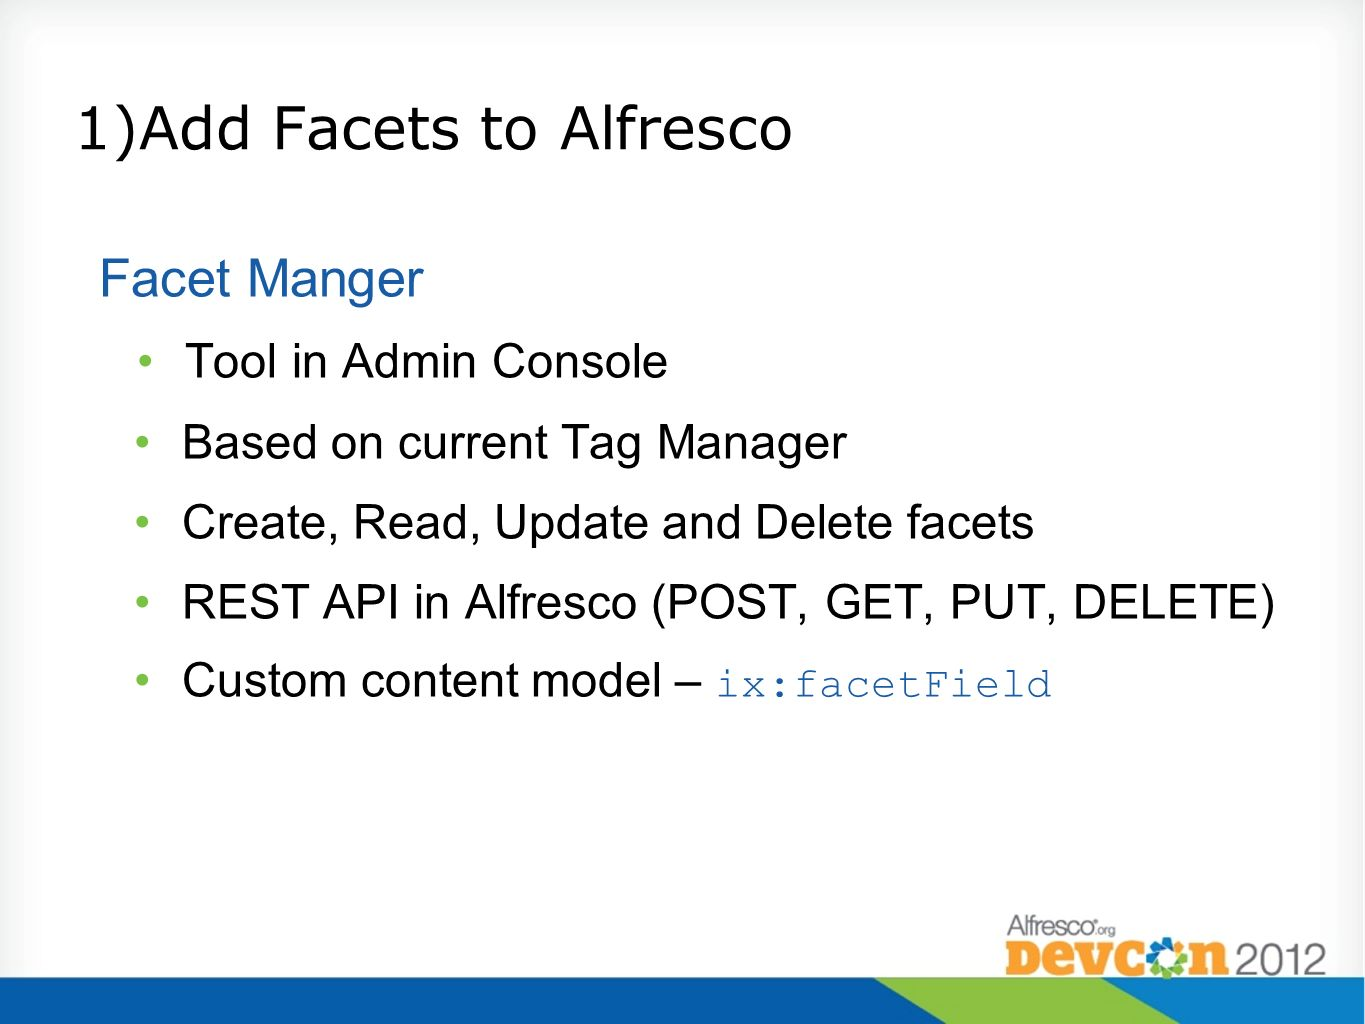 1)Add Facets to Alfresco